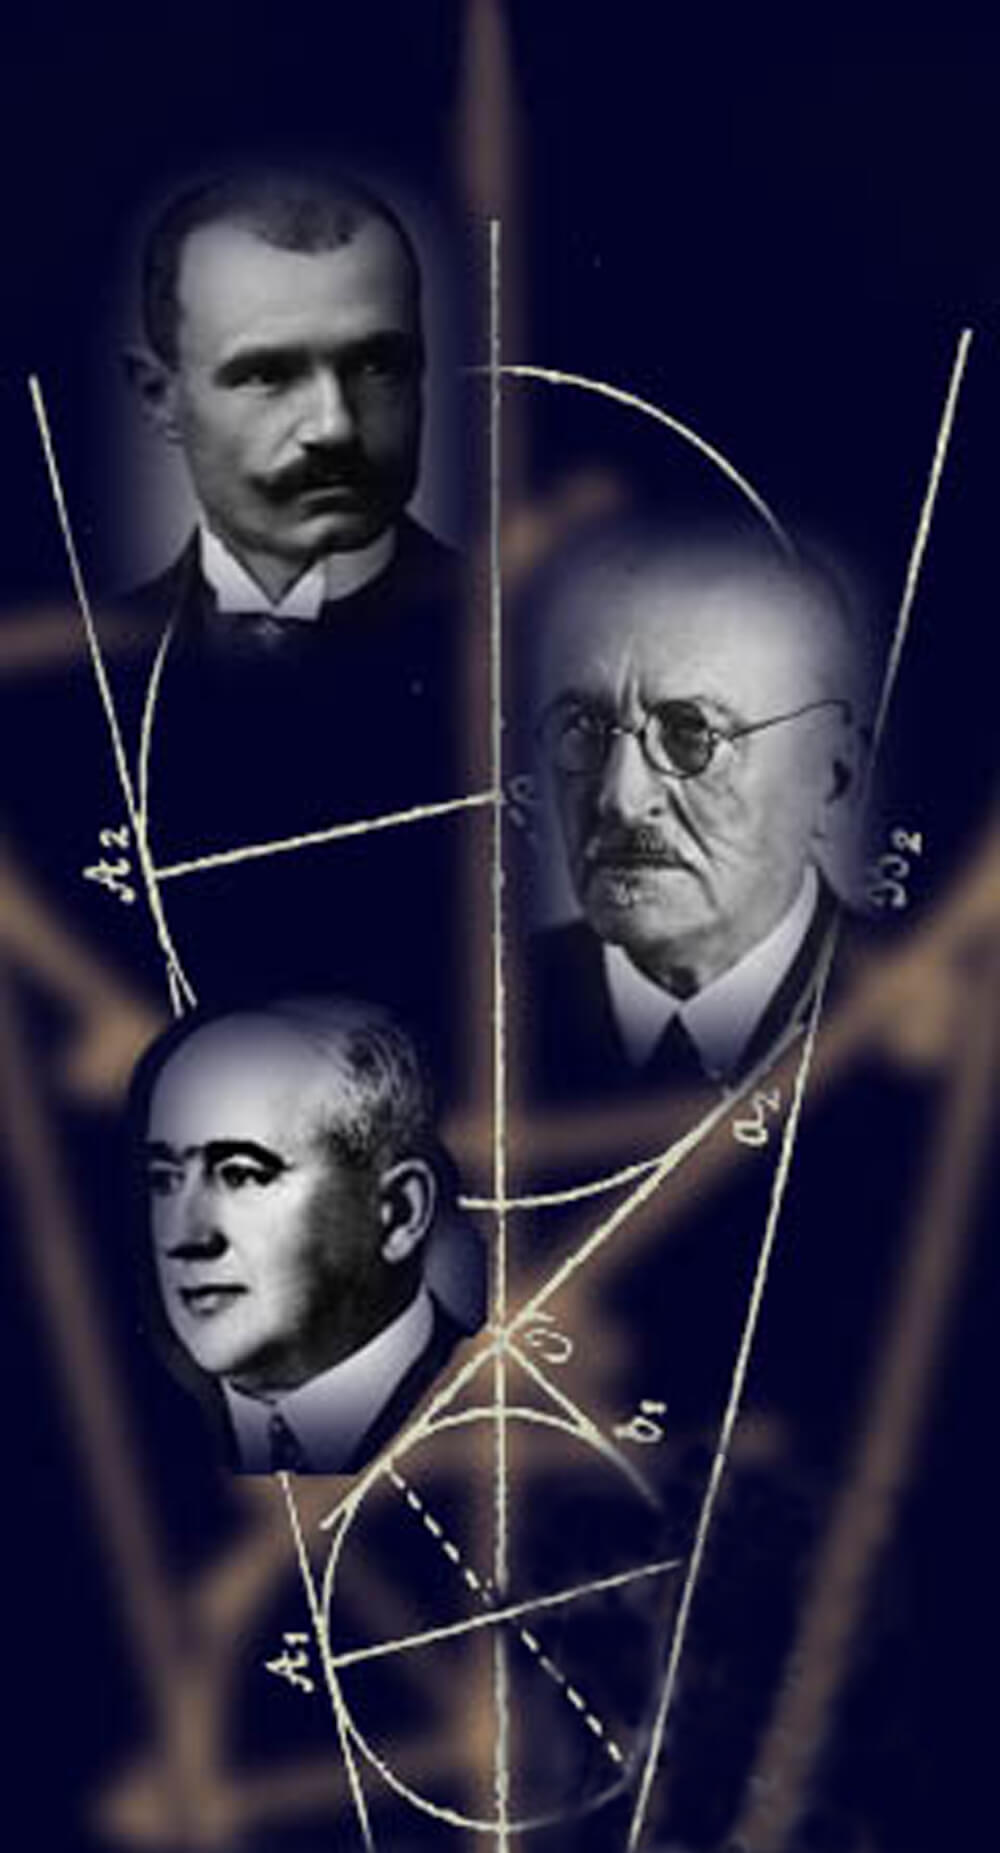 Academicians Mihailo Petrović, Bogdan Gavrilović and Milutin Milanković (Faculty of Mathematics, University of Belgrade)